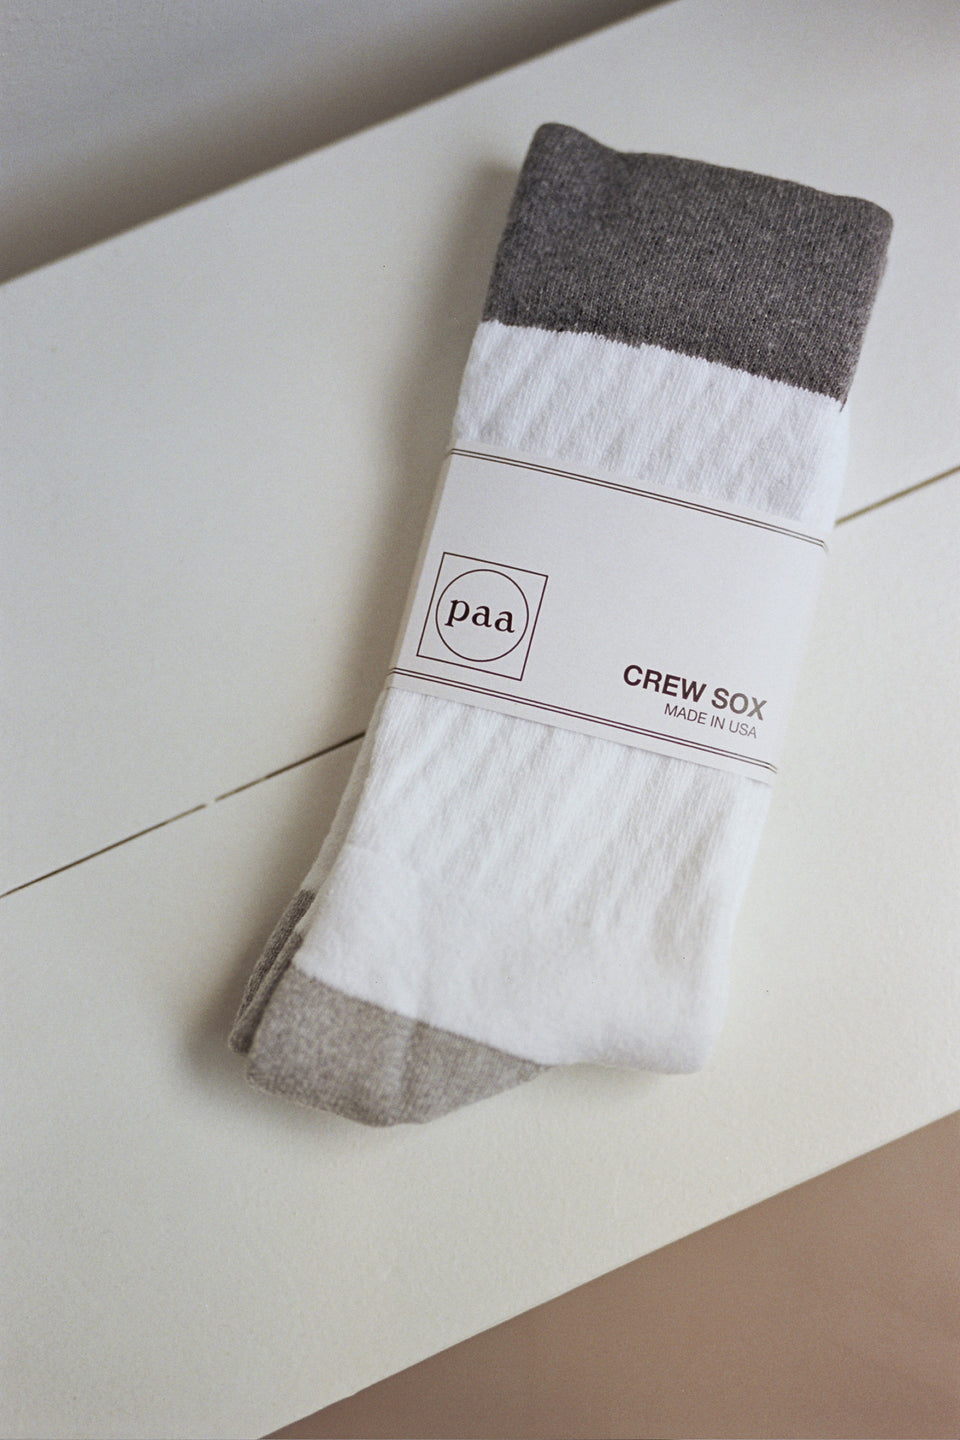 Paa FW20 AW20 Crew Sox 2.5 Combo One Calculus VIctoria BC Canada